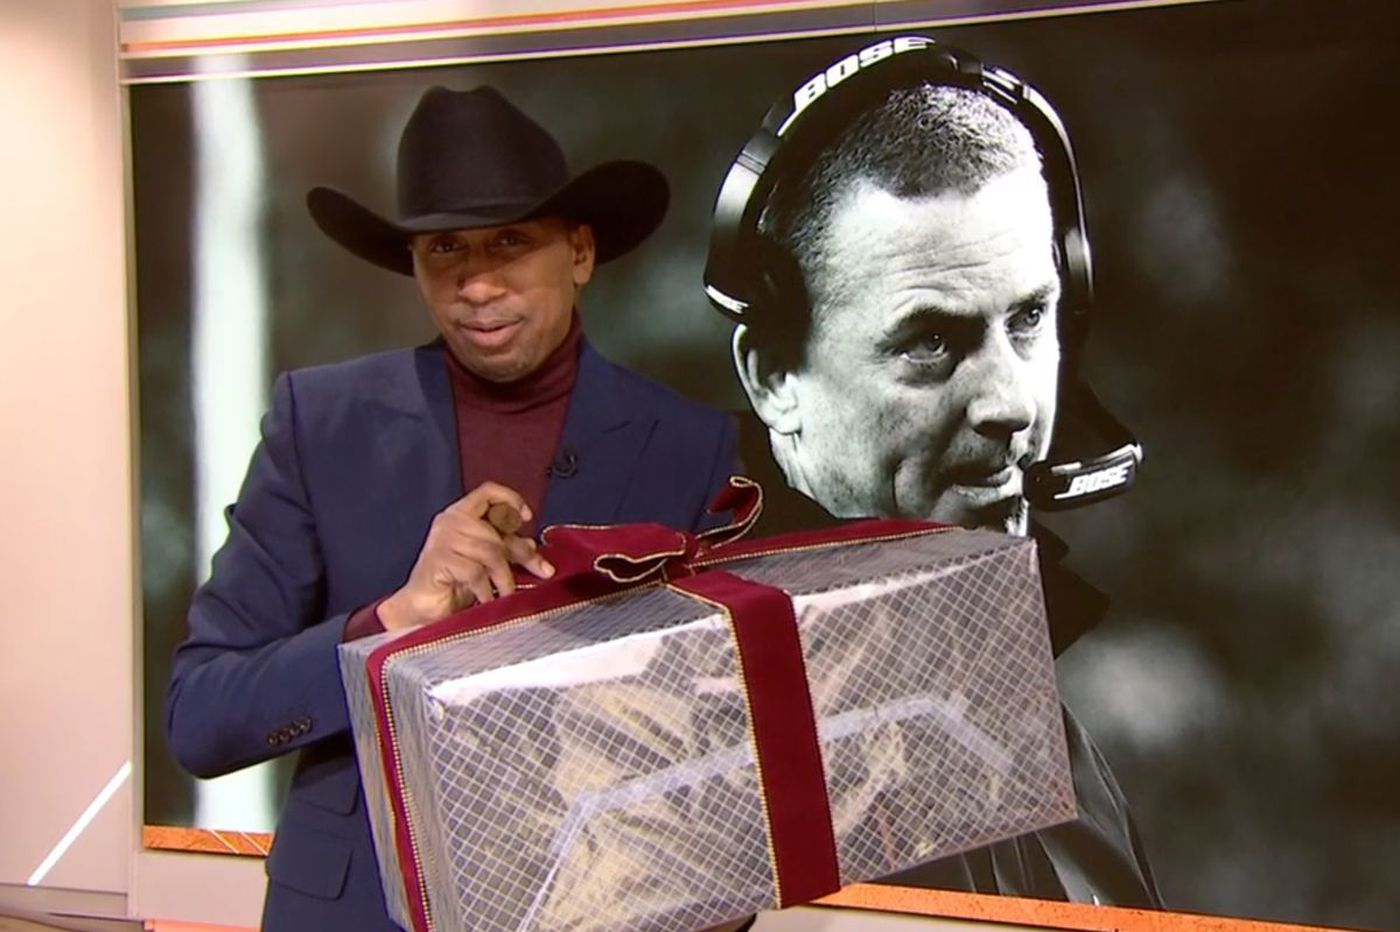 ESPN's Stephen A. Smith trolls Cowboys fans with the perfect gift after loss to Eagles